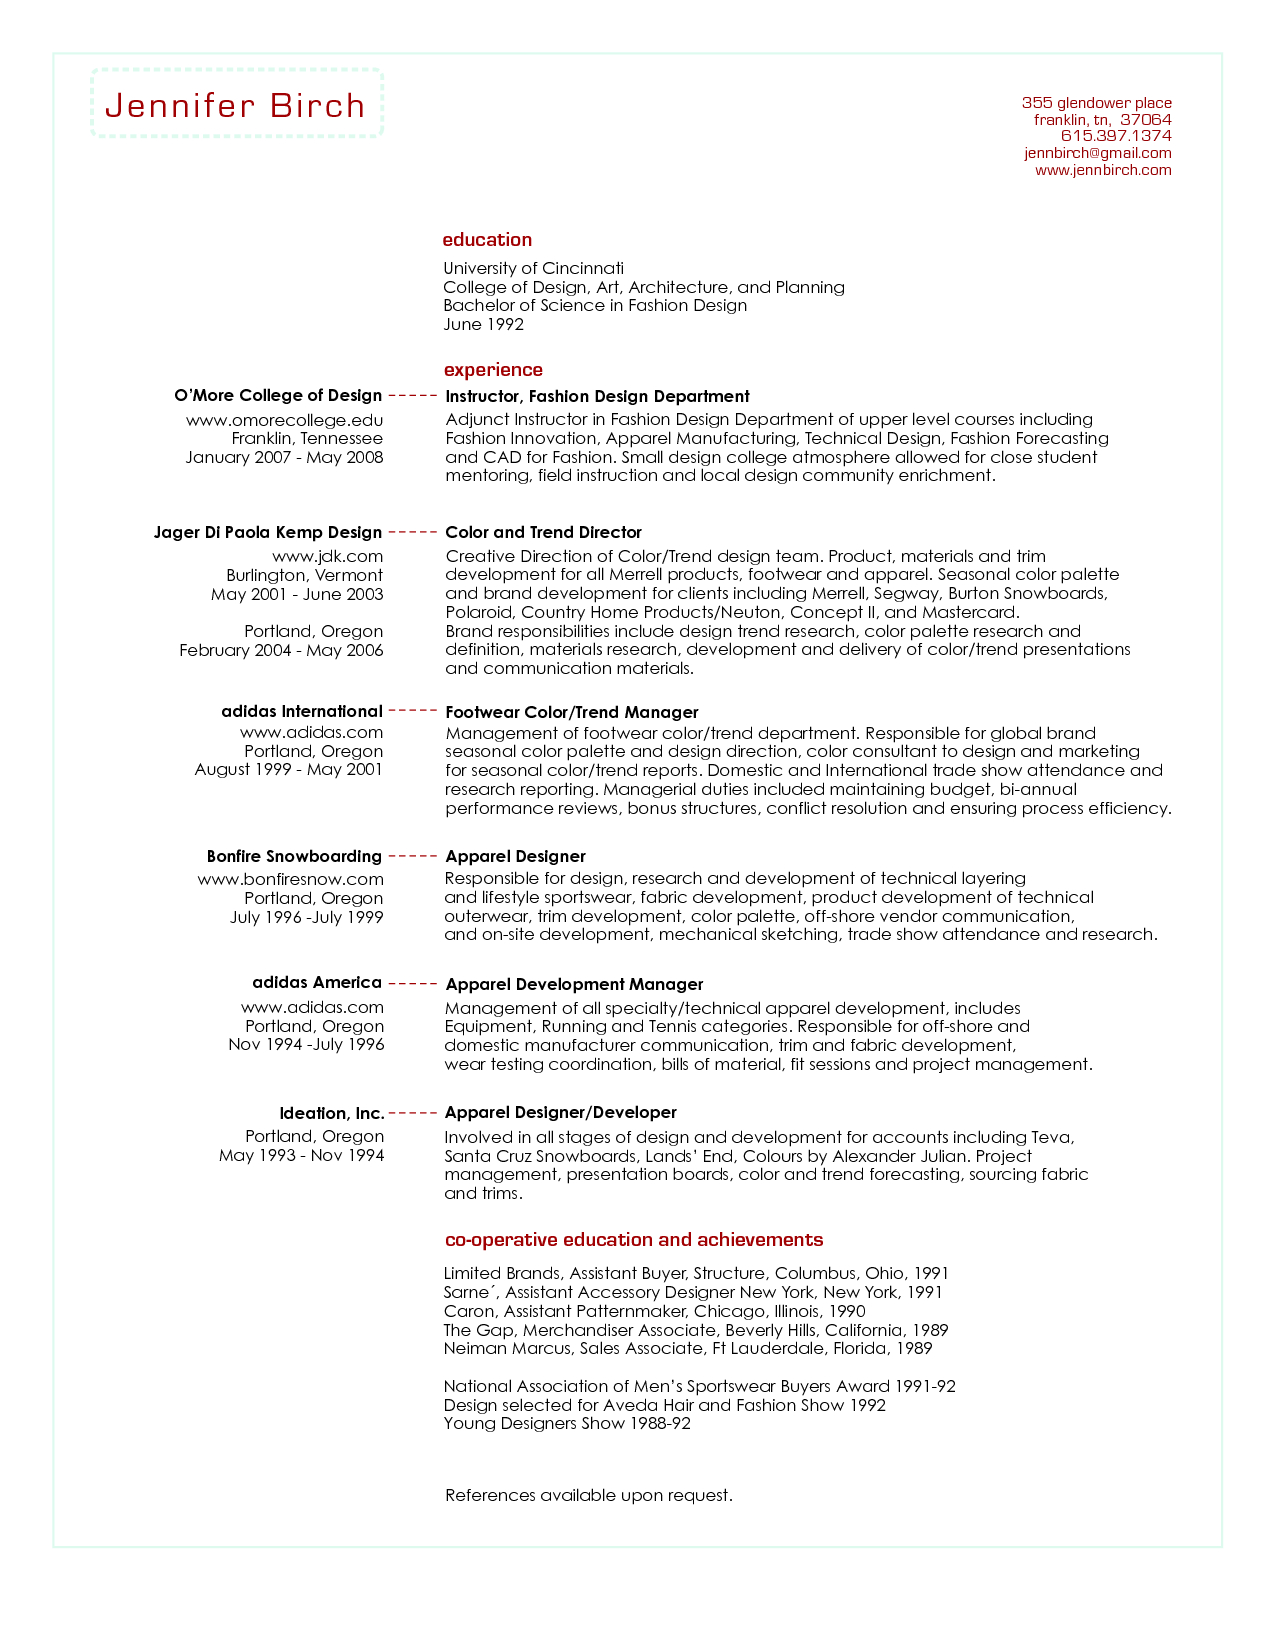 Photographer Resume Template Download - Junior Fashion Er Resume Skills Google Search